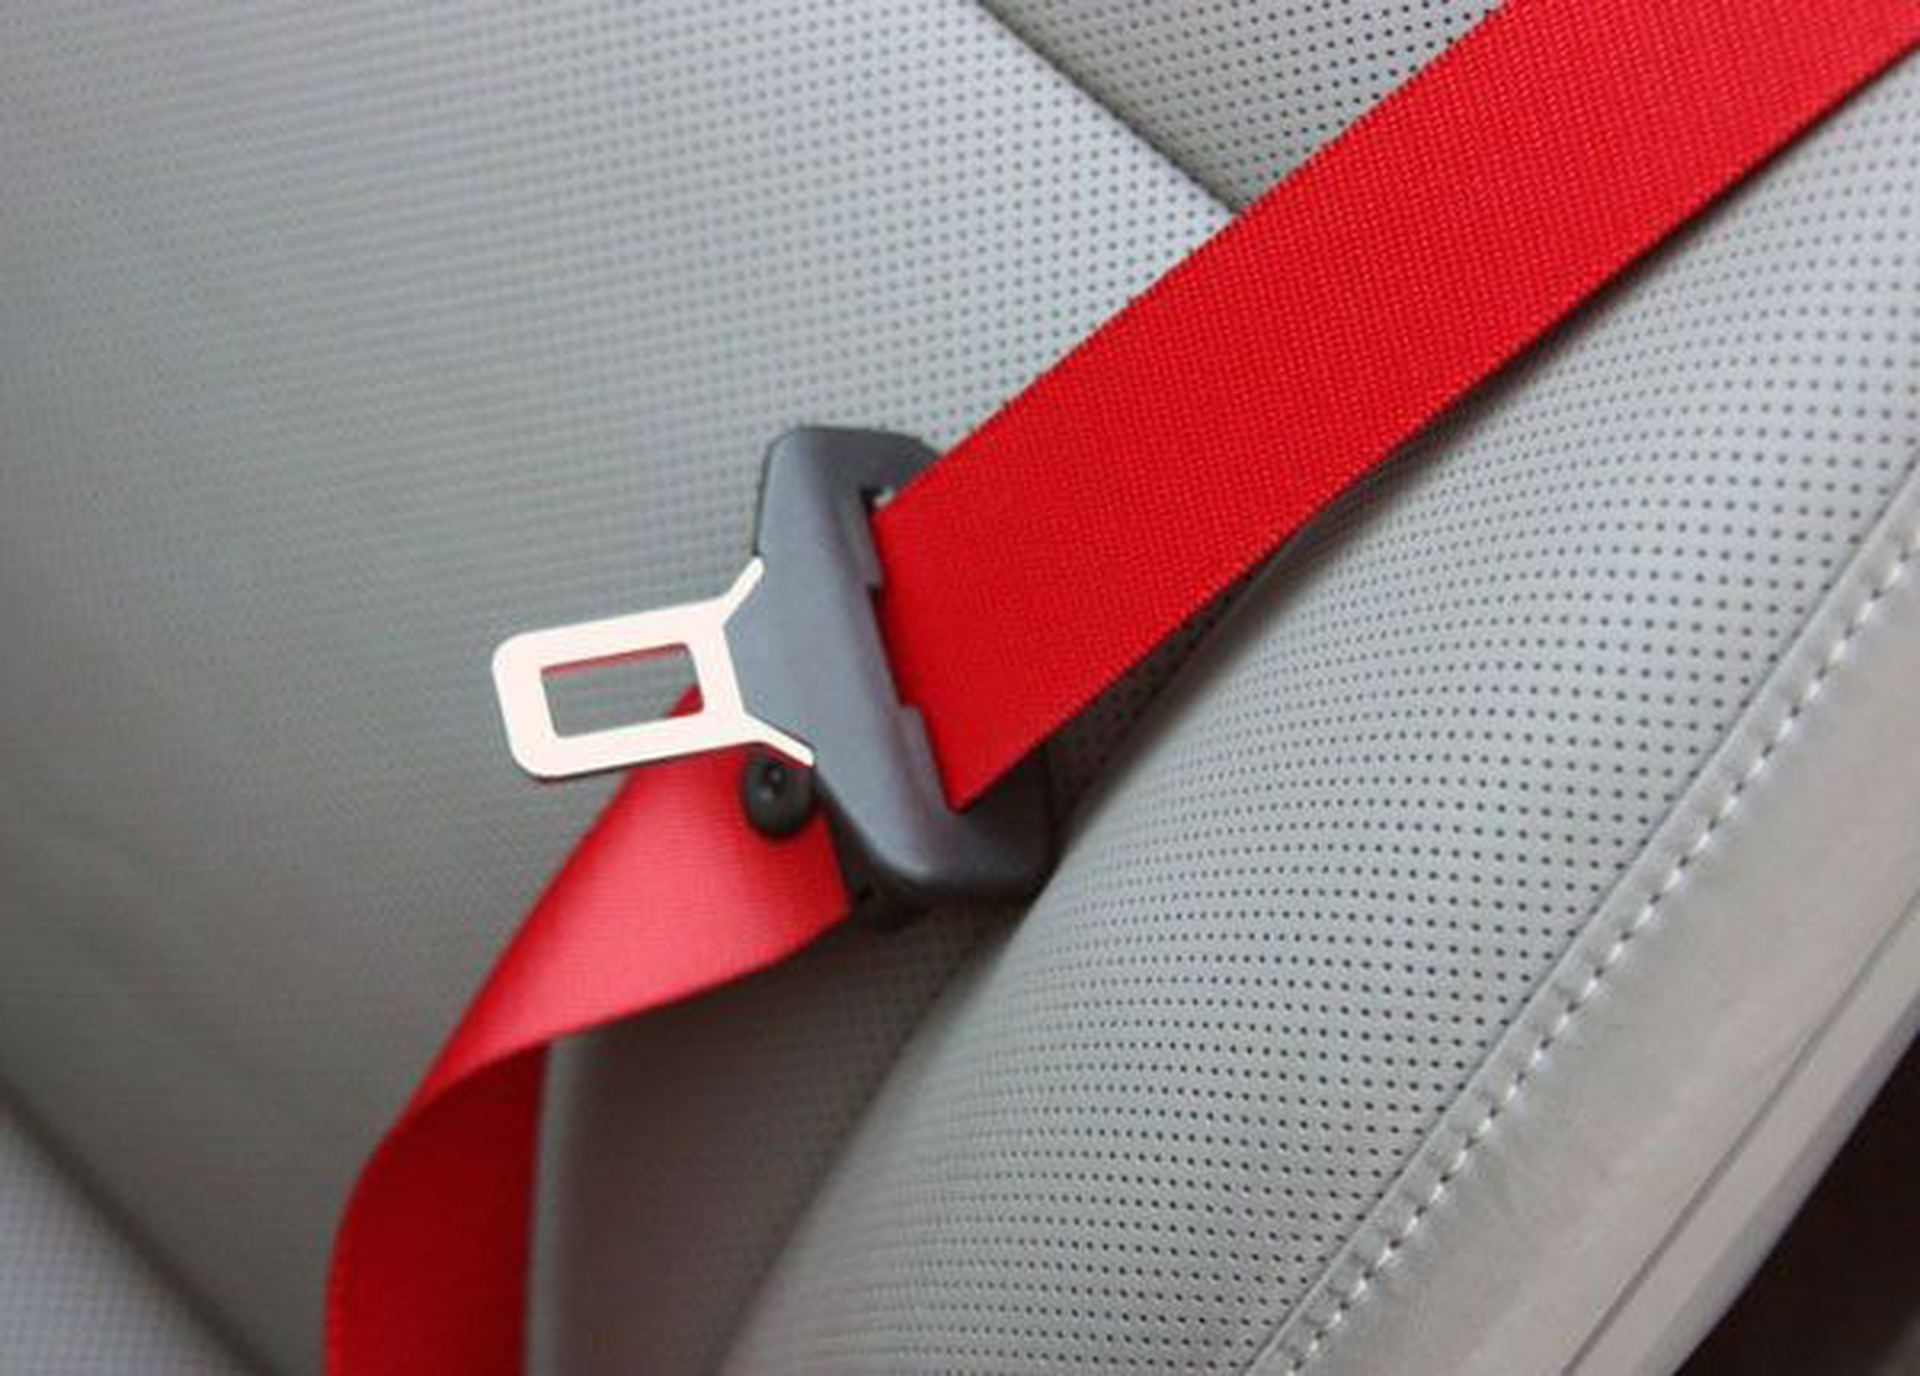 Seat Belt Laws & Regulations in the US